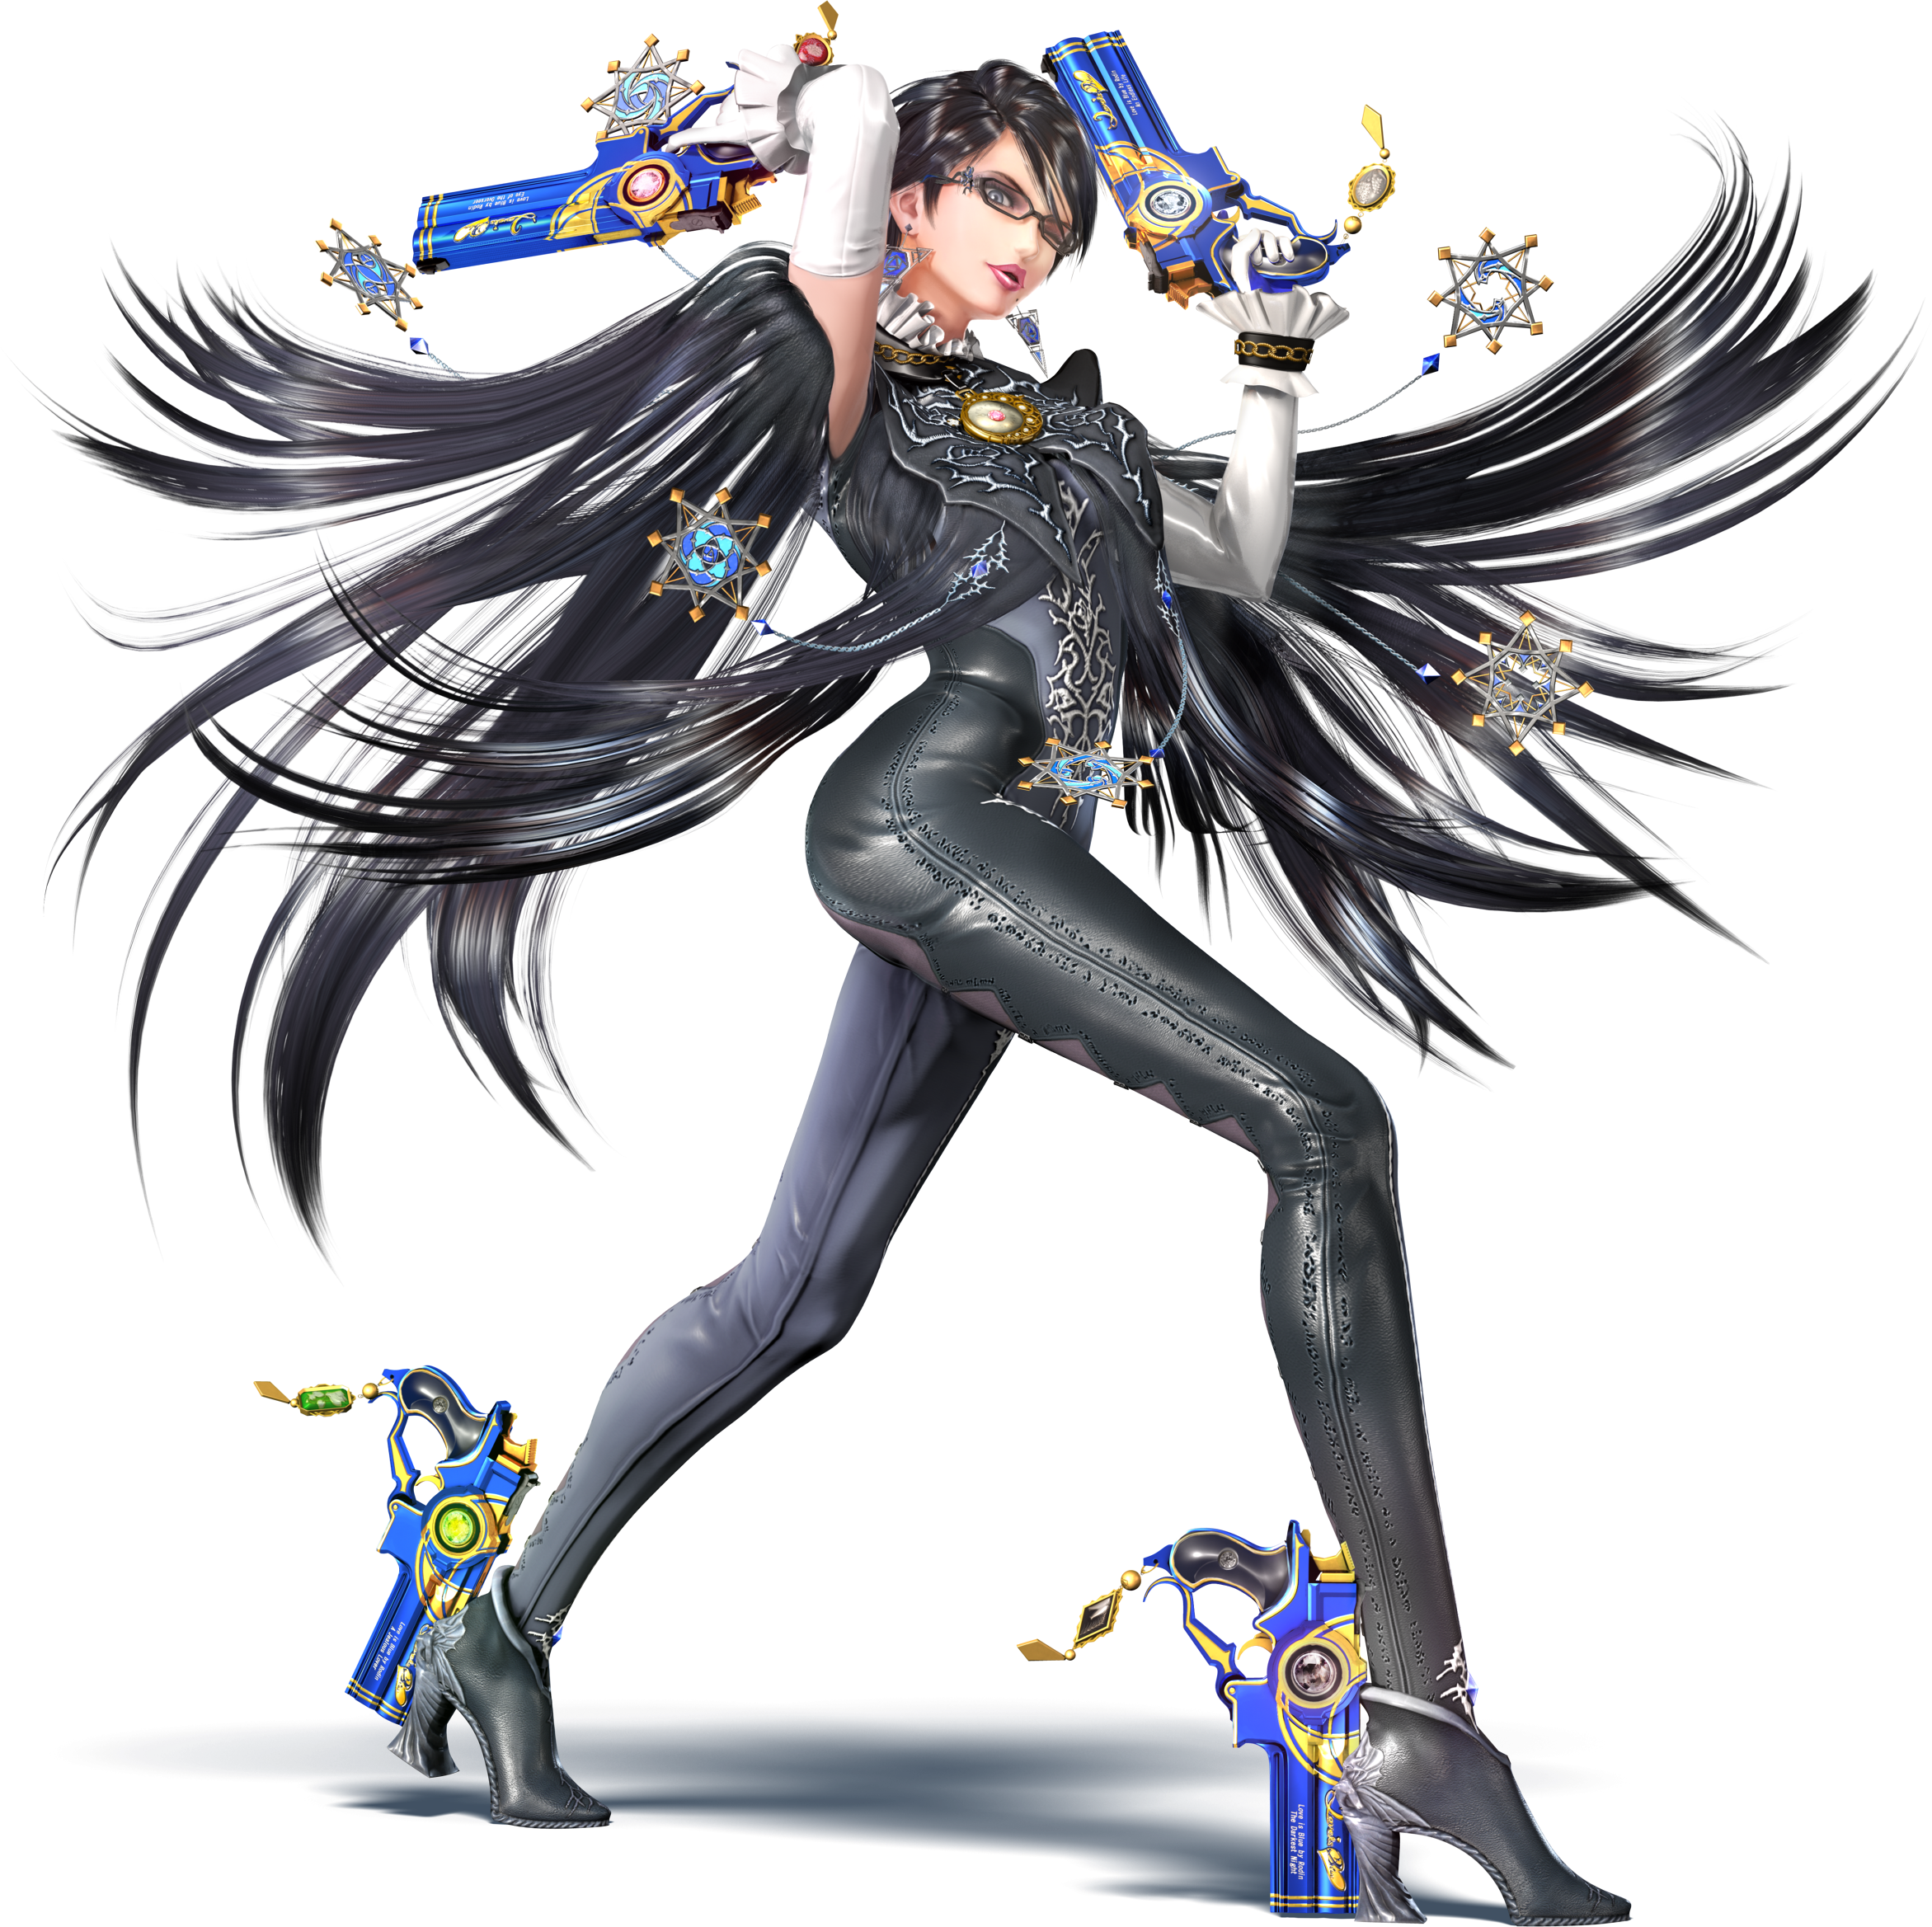 bayonetta drawing 16 bit